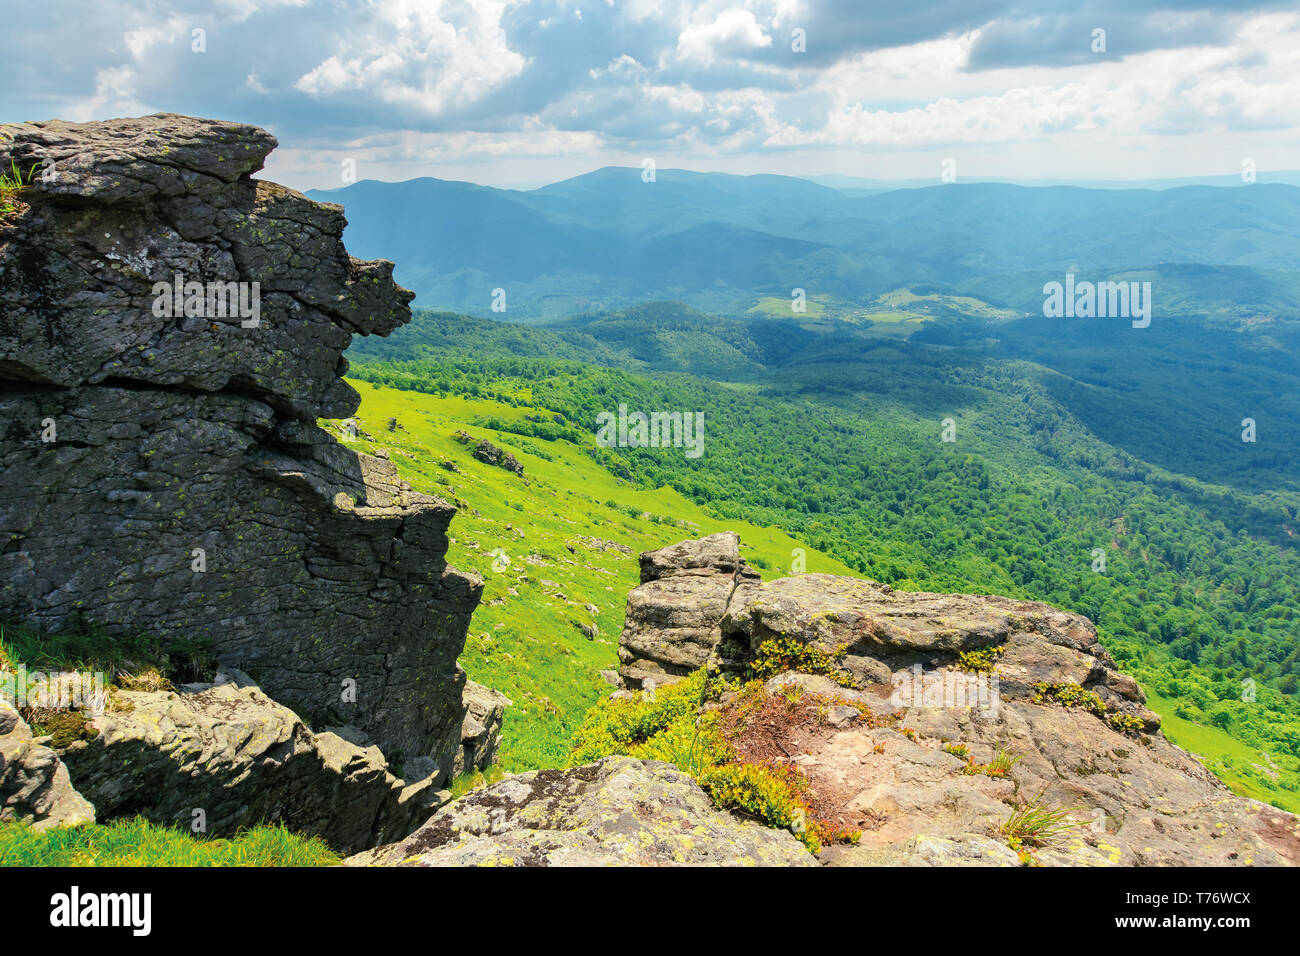 landscape with grassy meadow with giant boulders on the slope of a hill in Carpathian mountain ridge on a beautiful sunny summer day - Stock Image